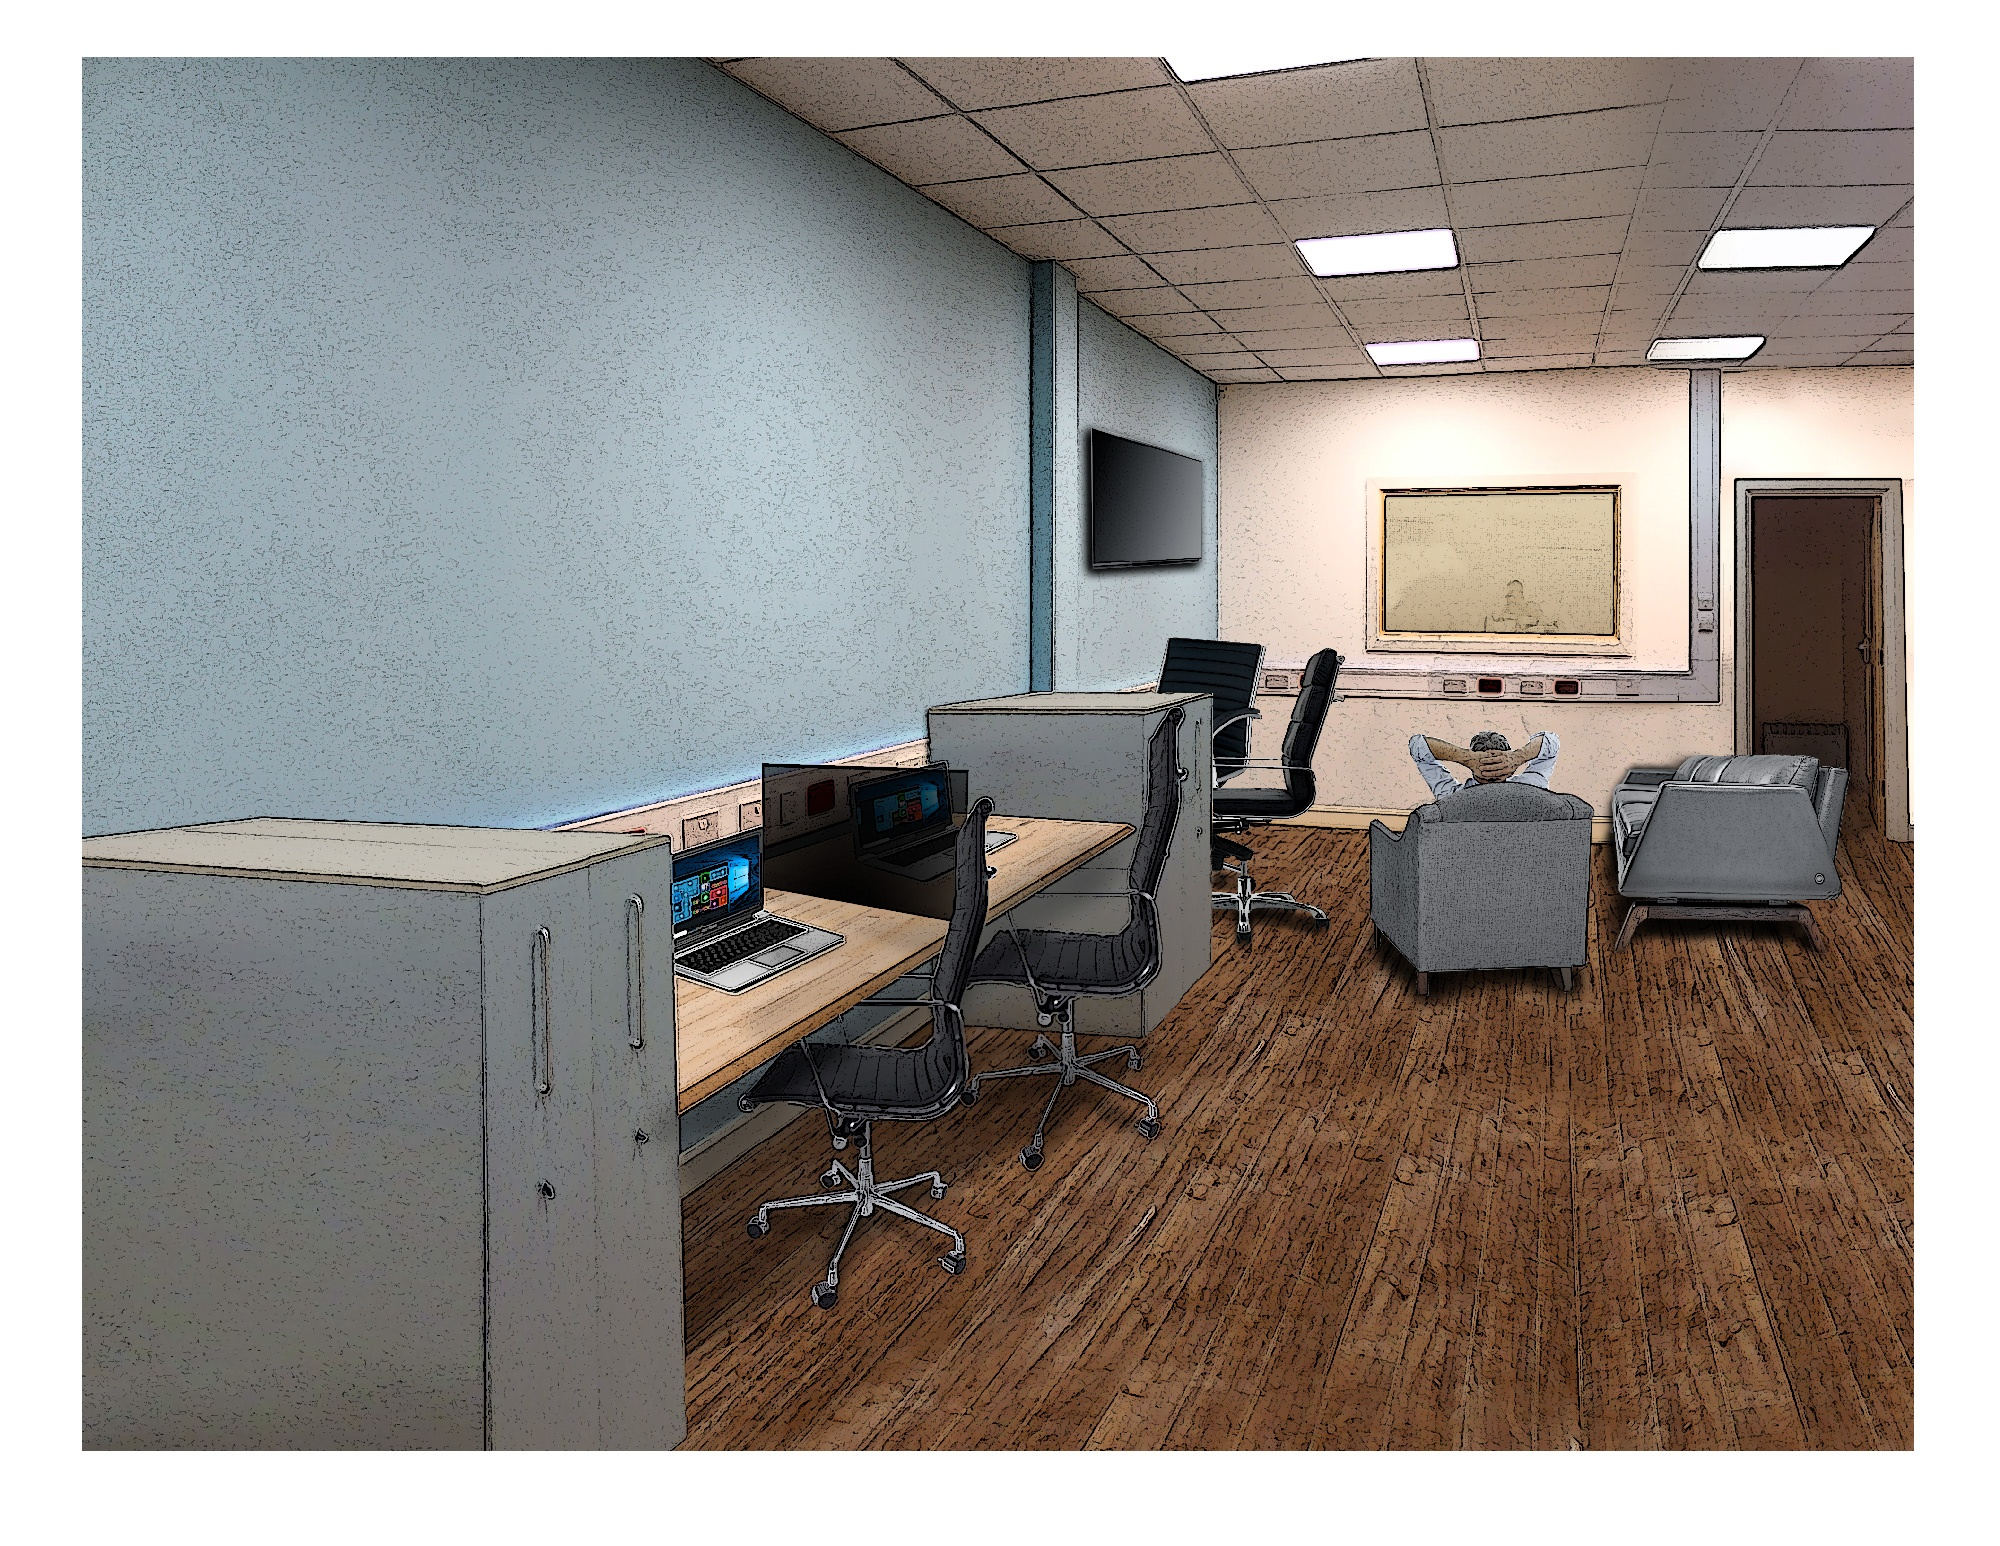 Artwork: The Hive's shared office space available in MK.